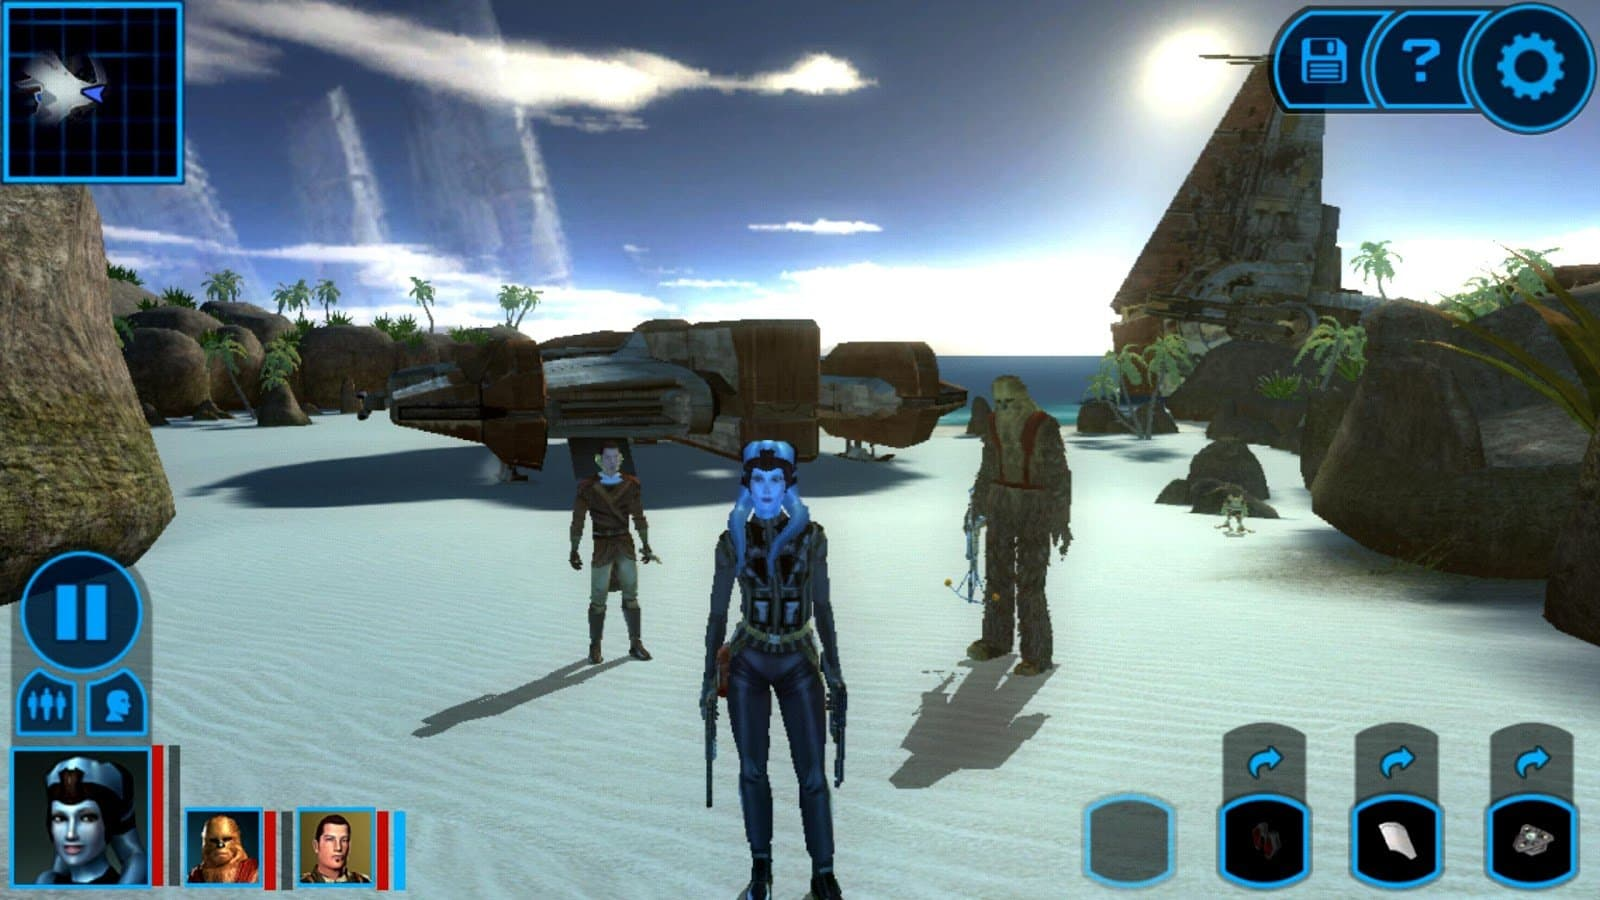 Скачать star wars: knights of the old republic для android.